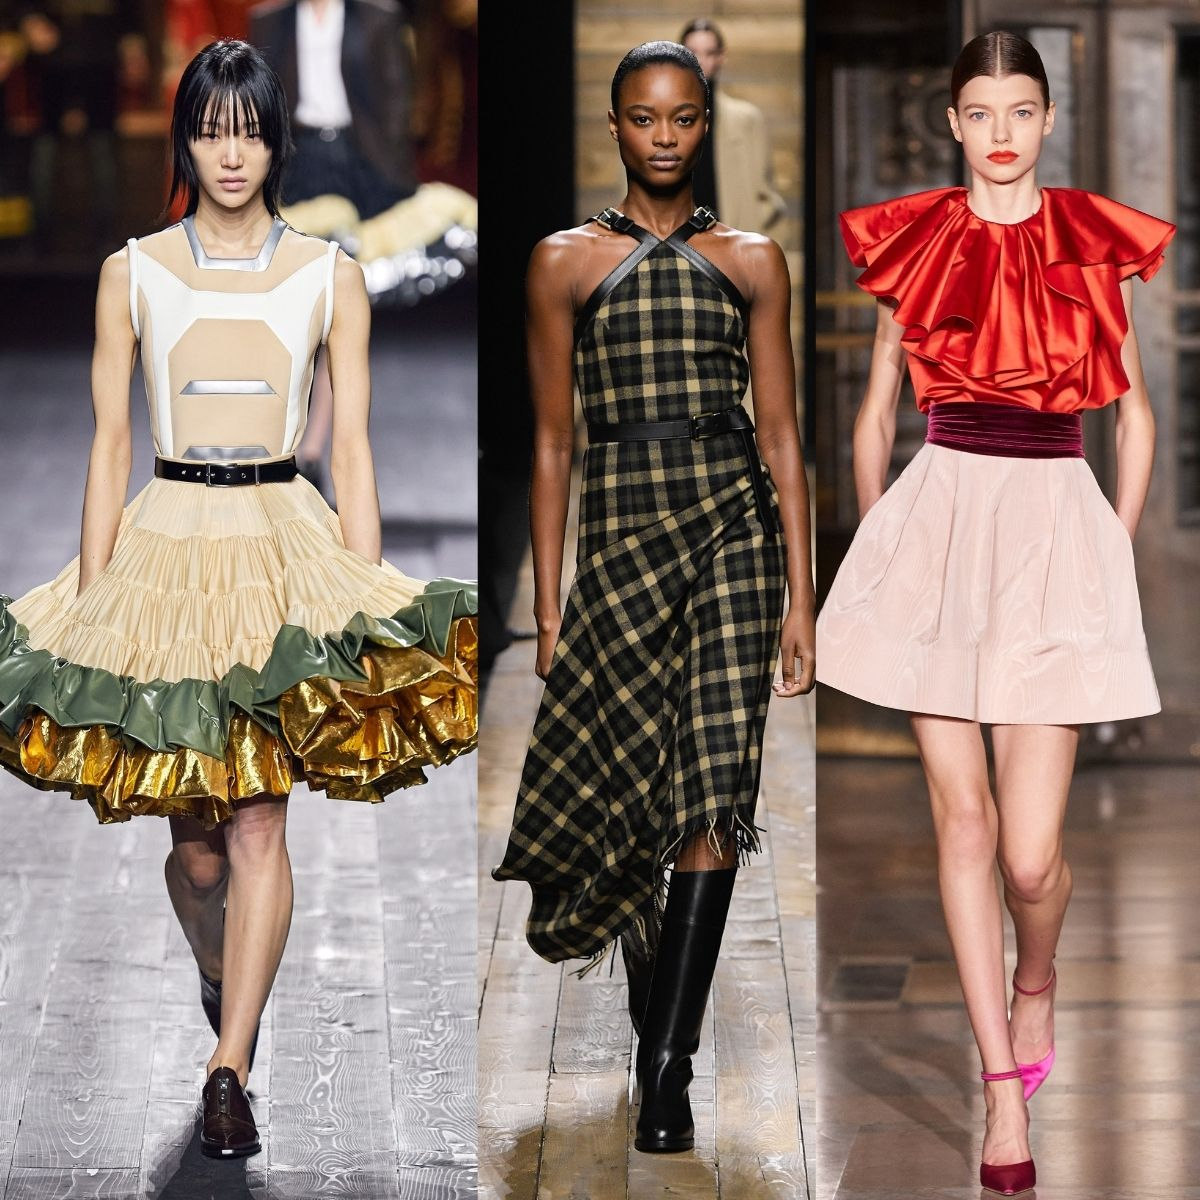 Louis Vuitton. Michael Kors and Oscar De La Renta runway images